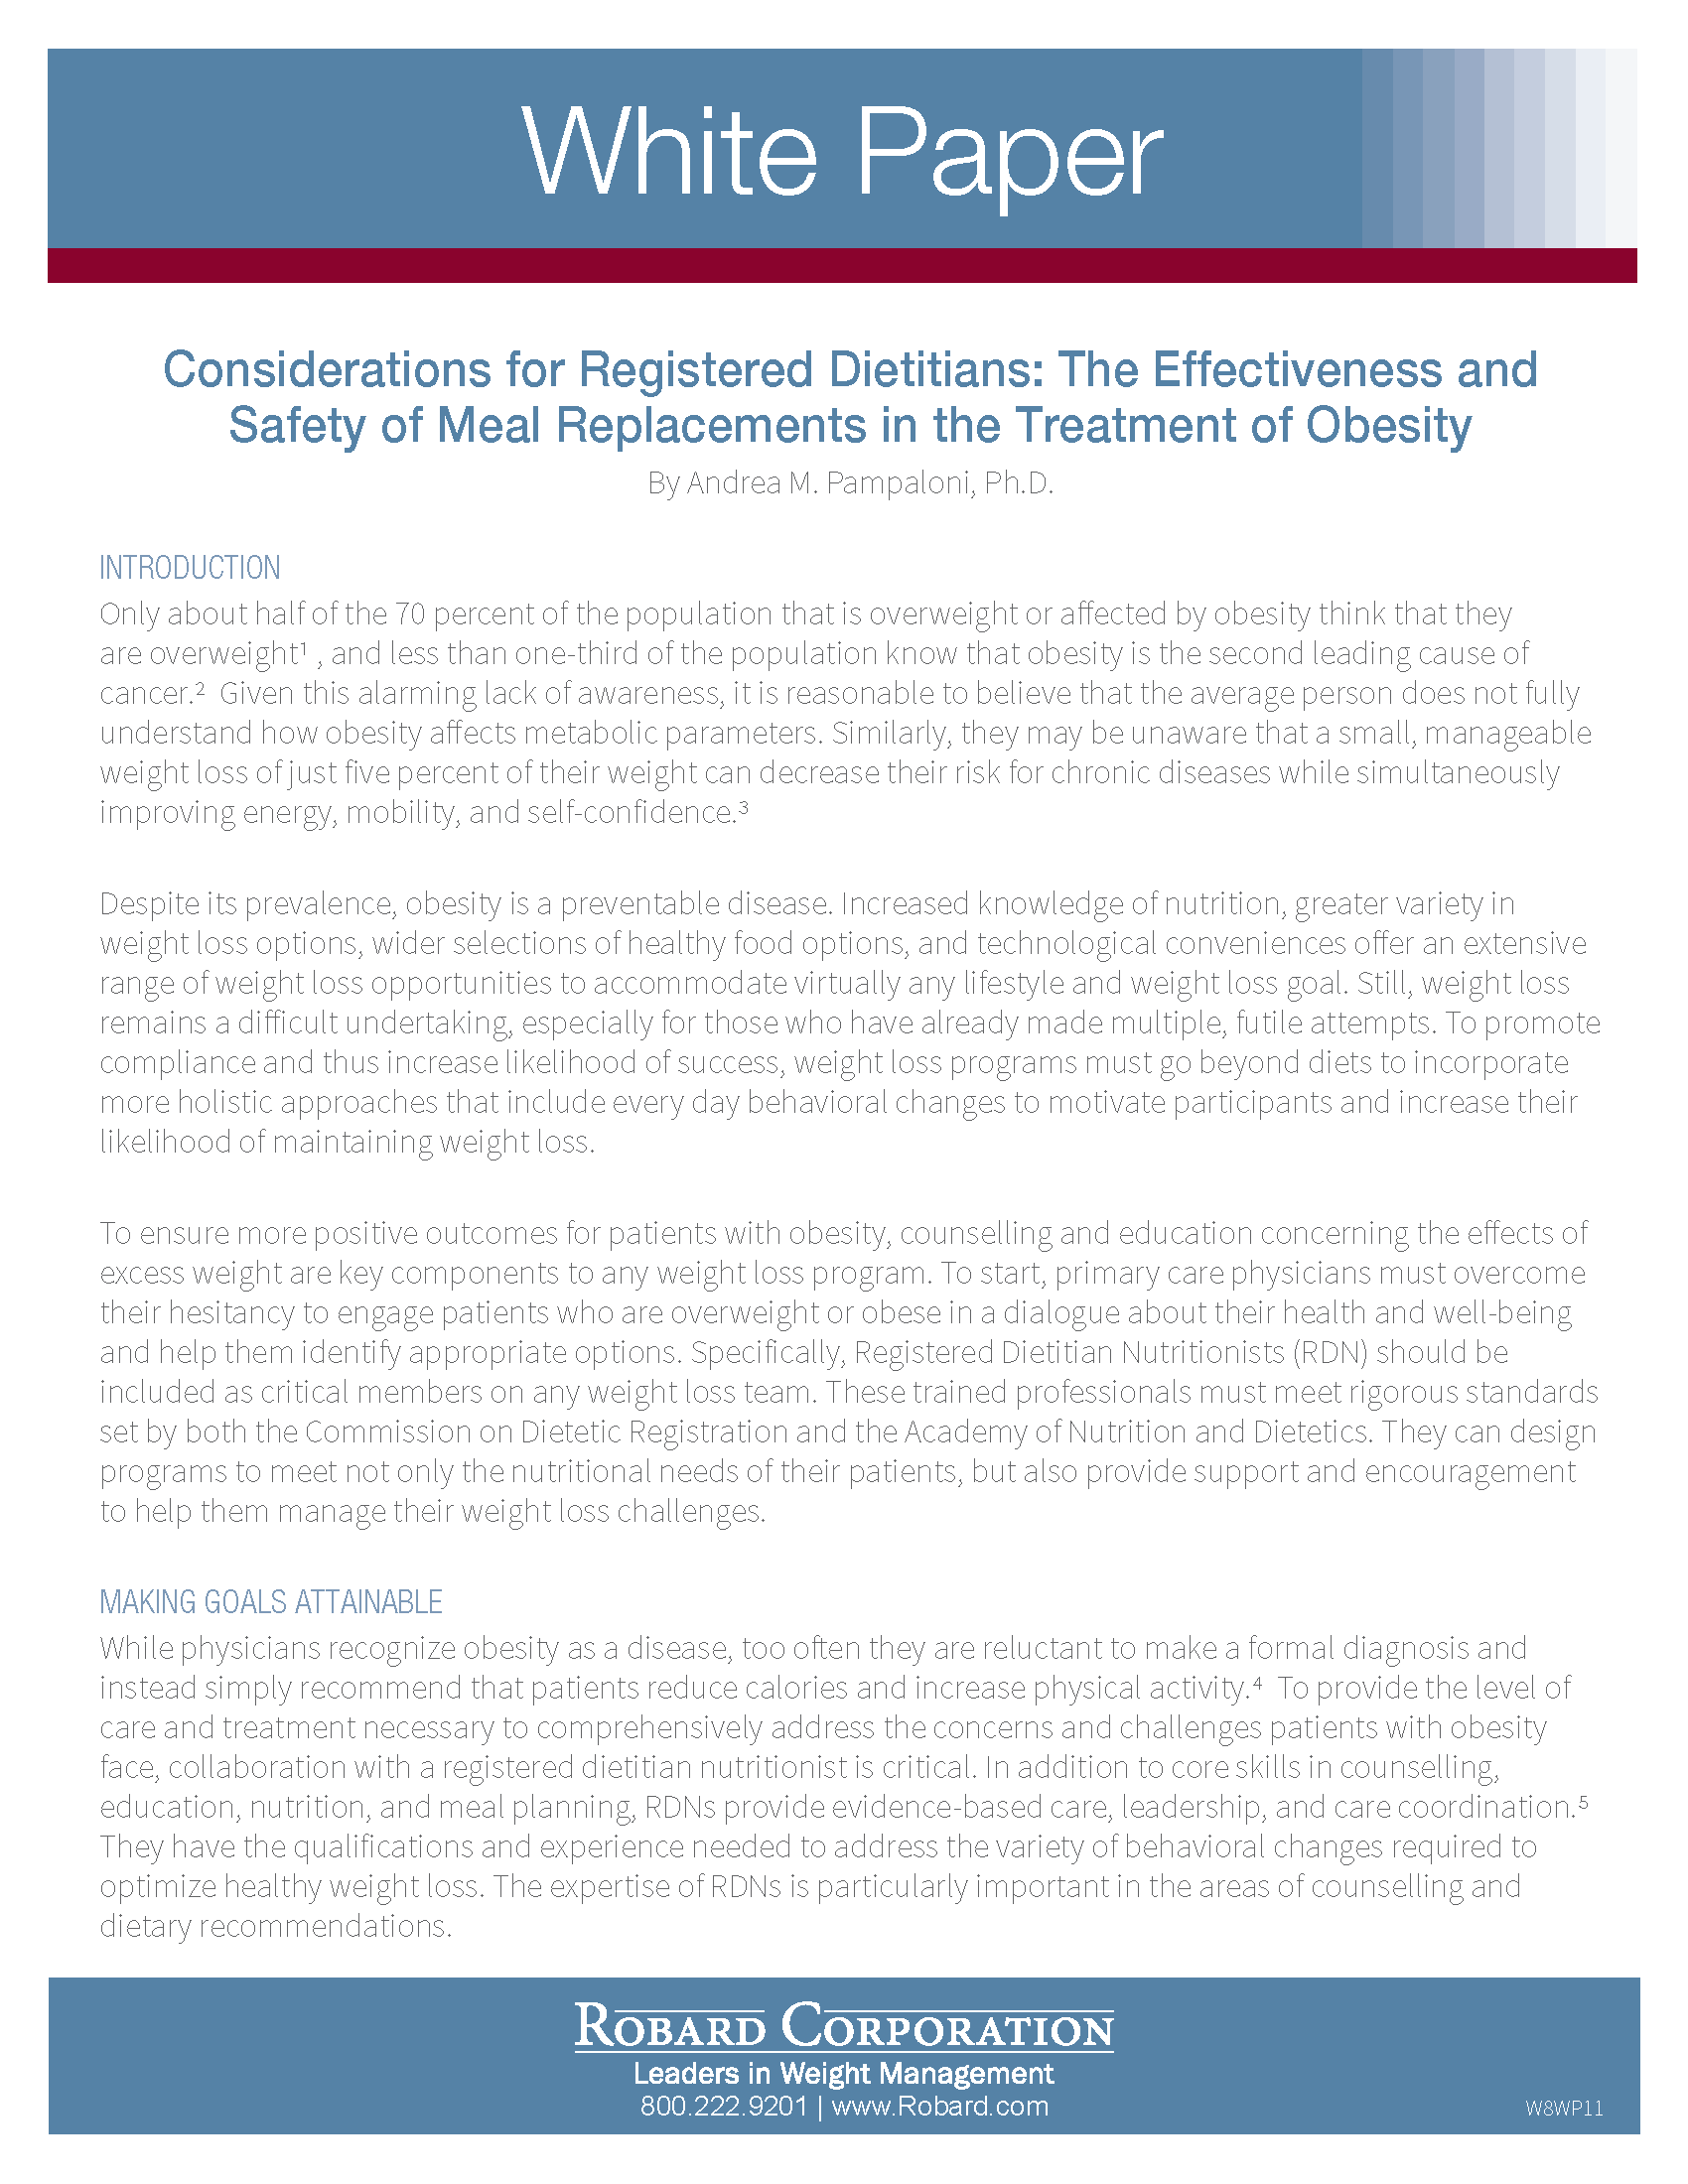 Considerations For Registered Dietitians White Paper